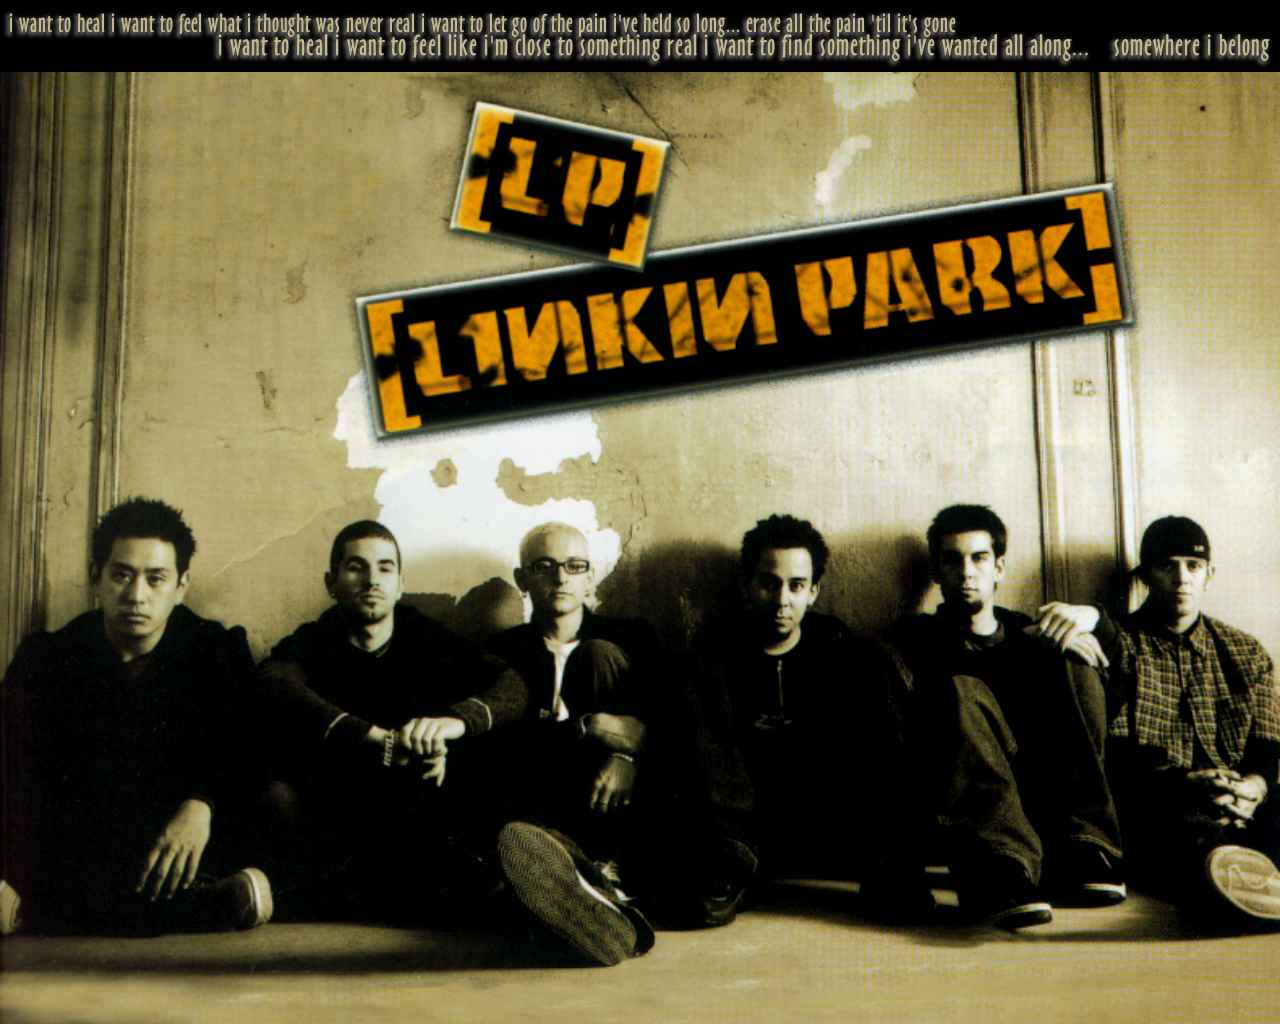 Index of music linkin park mp3 | In The End Linkin Park Mp3 [10 10